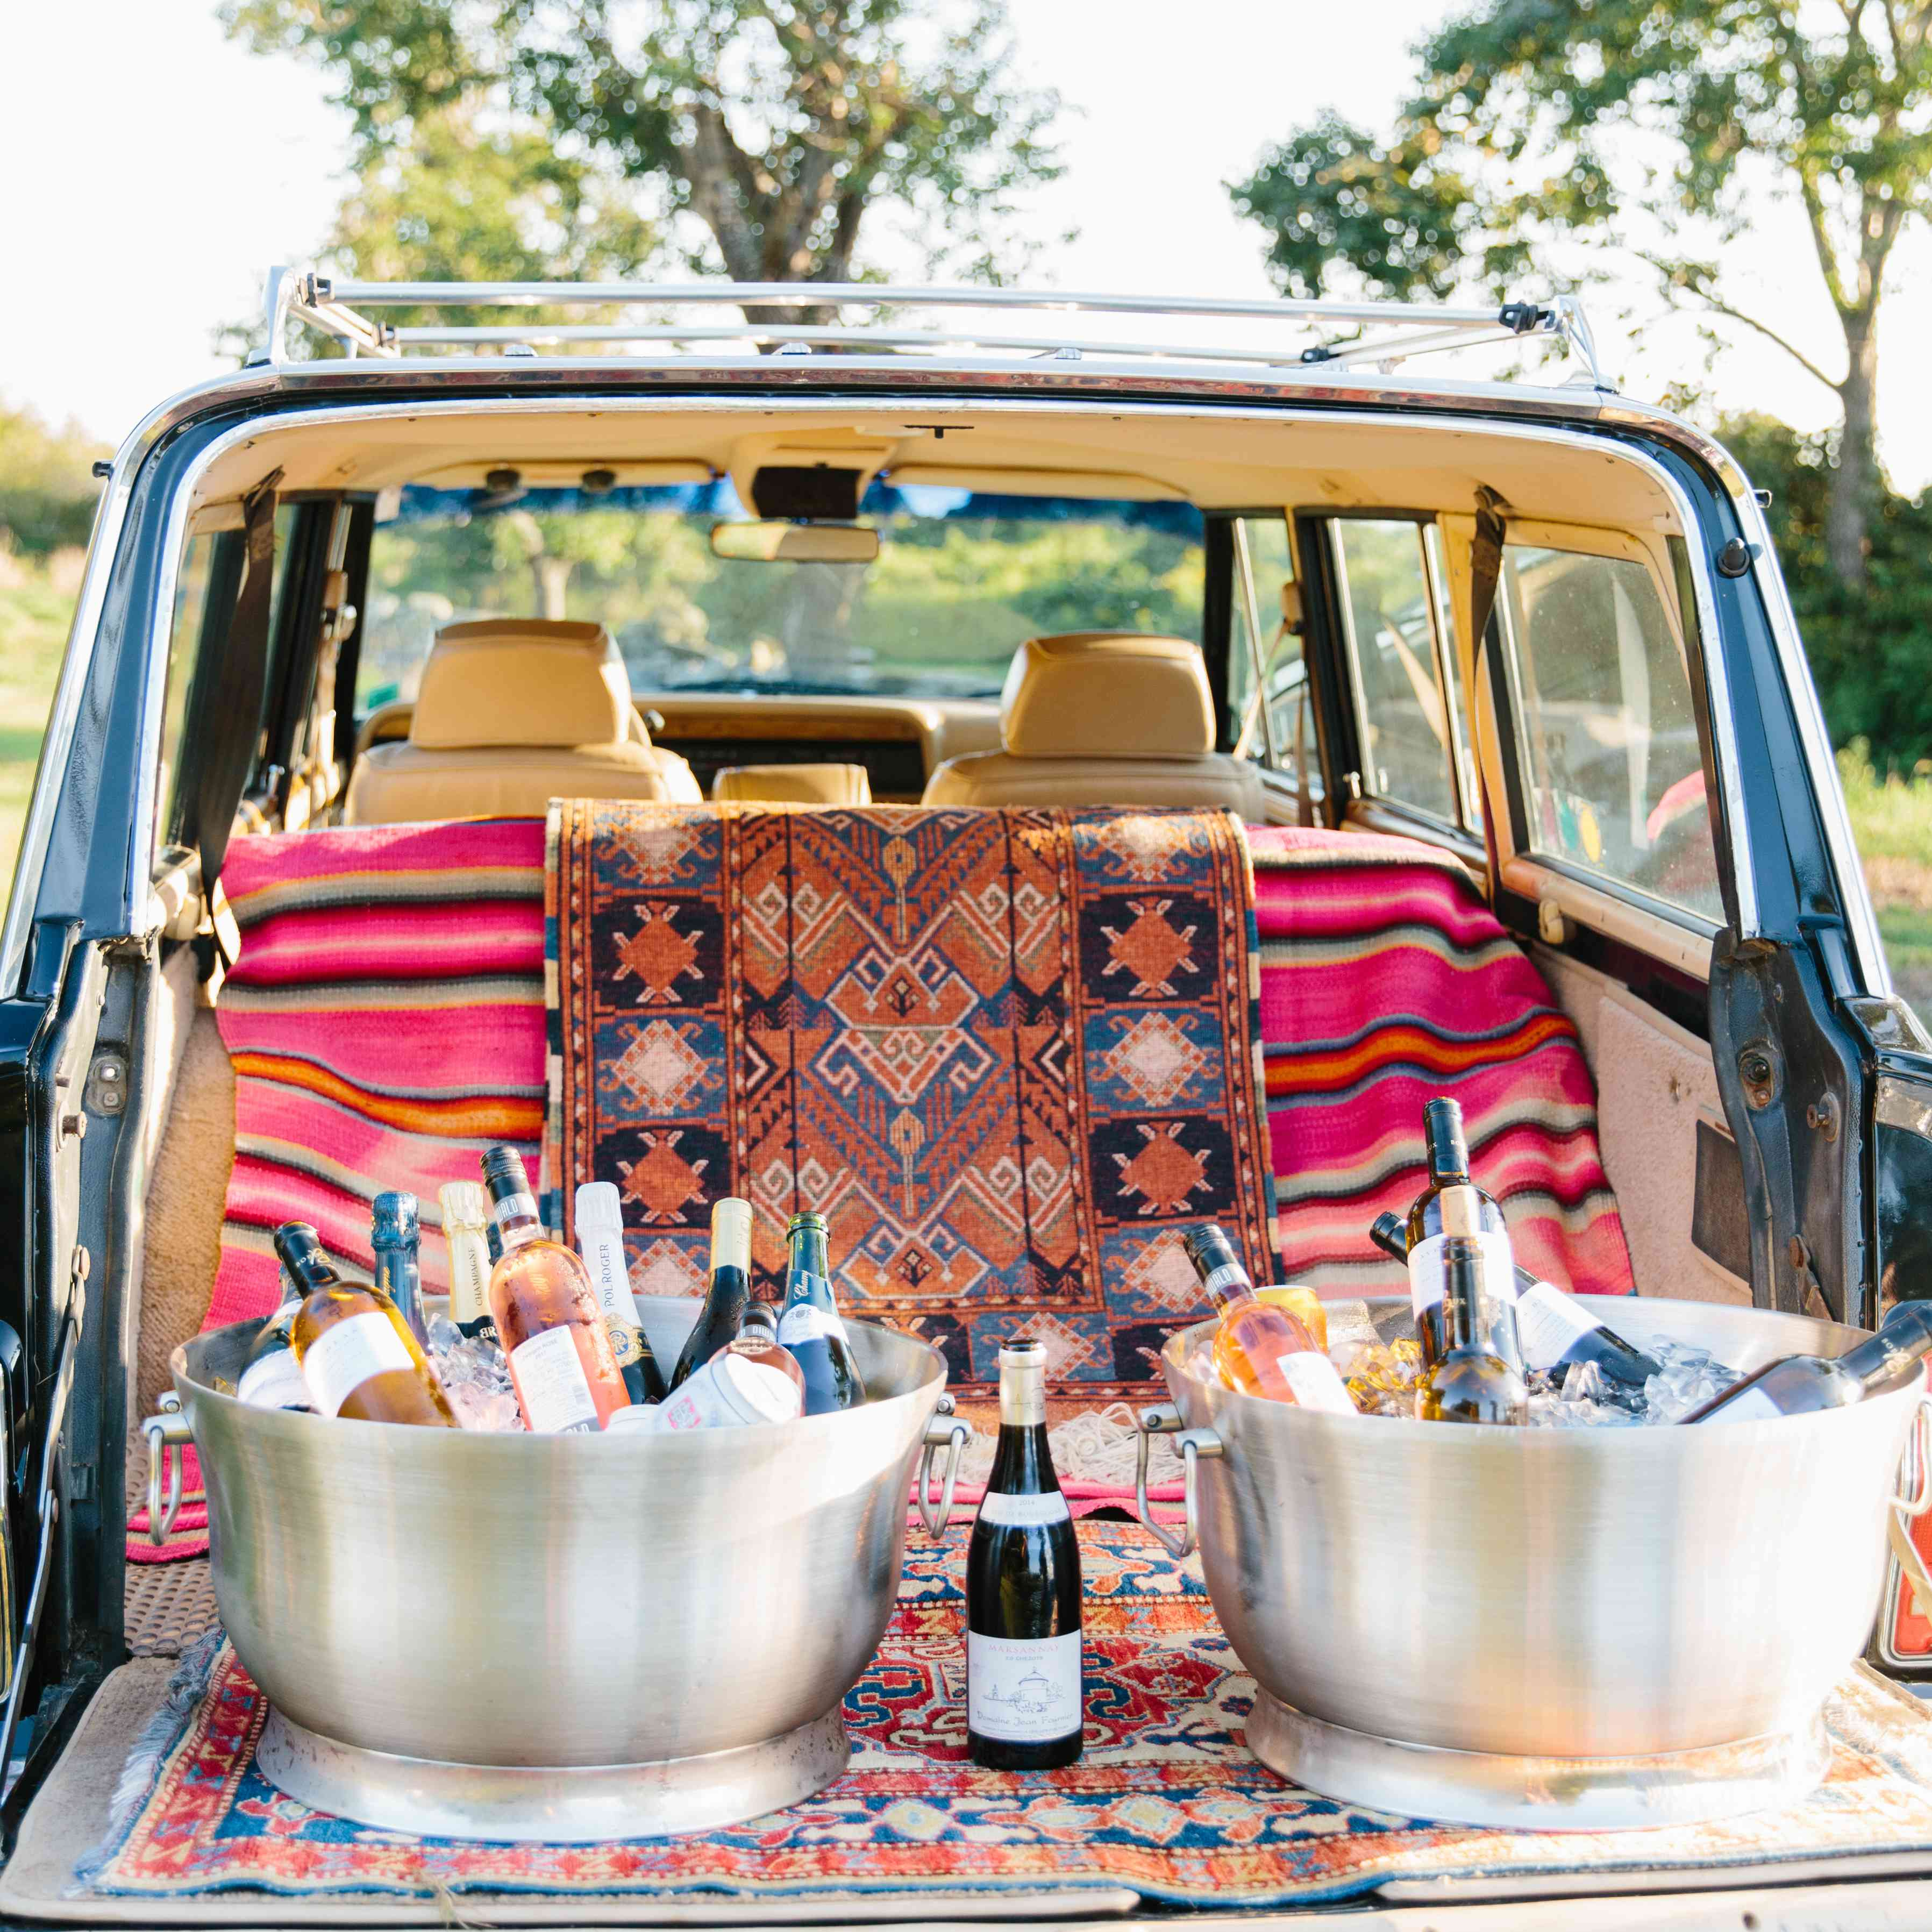 Bar in the back of a car